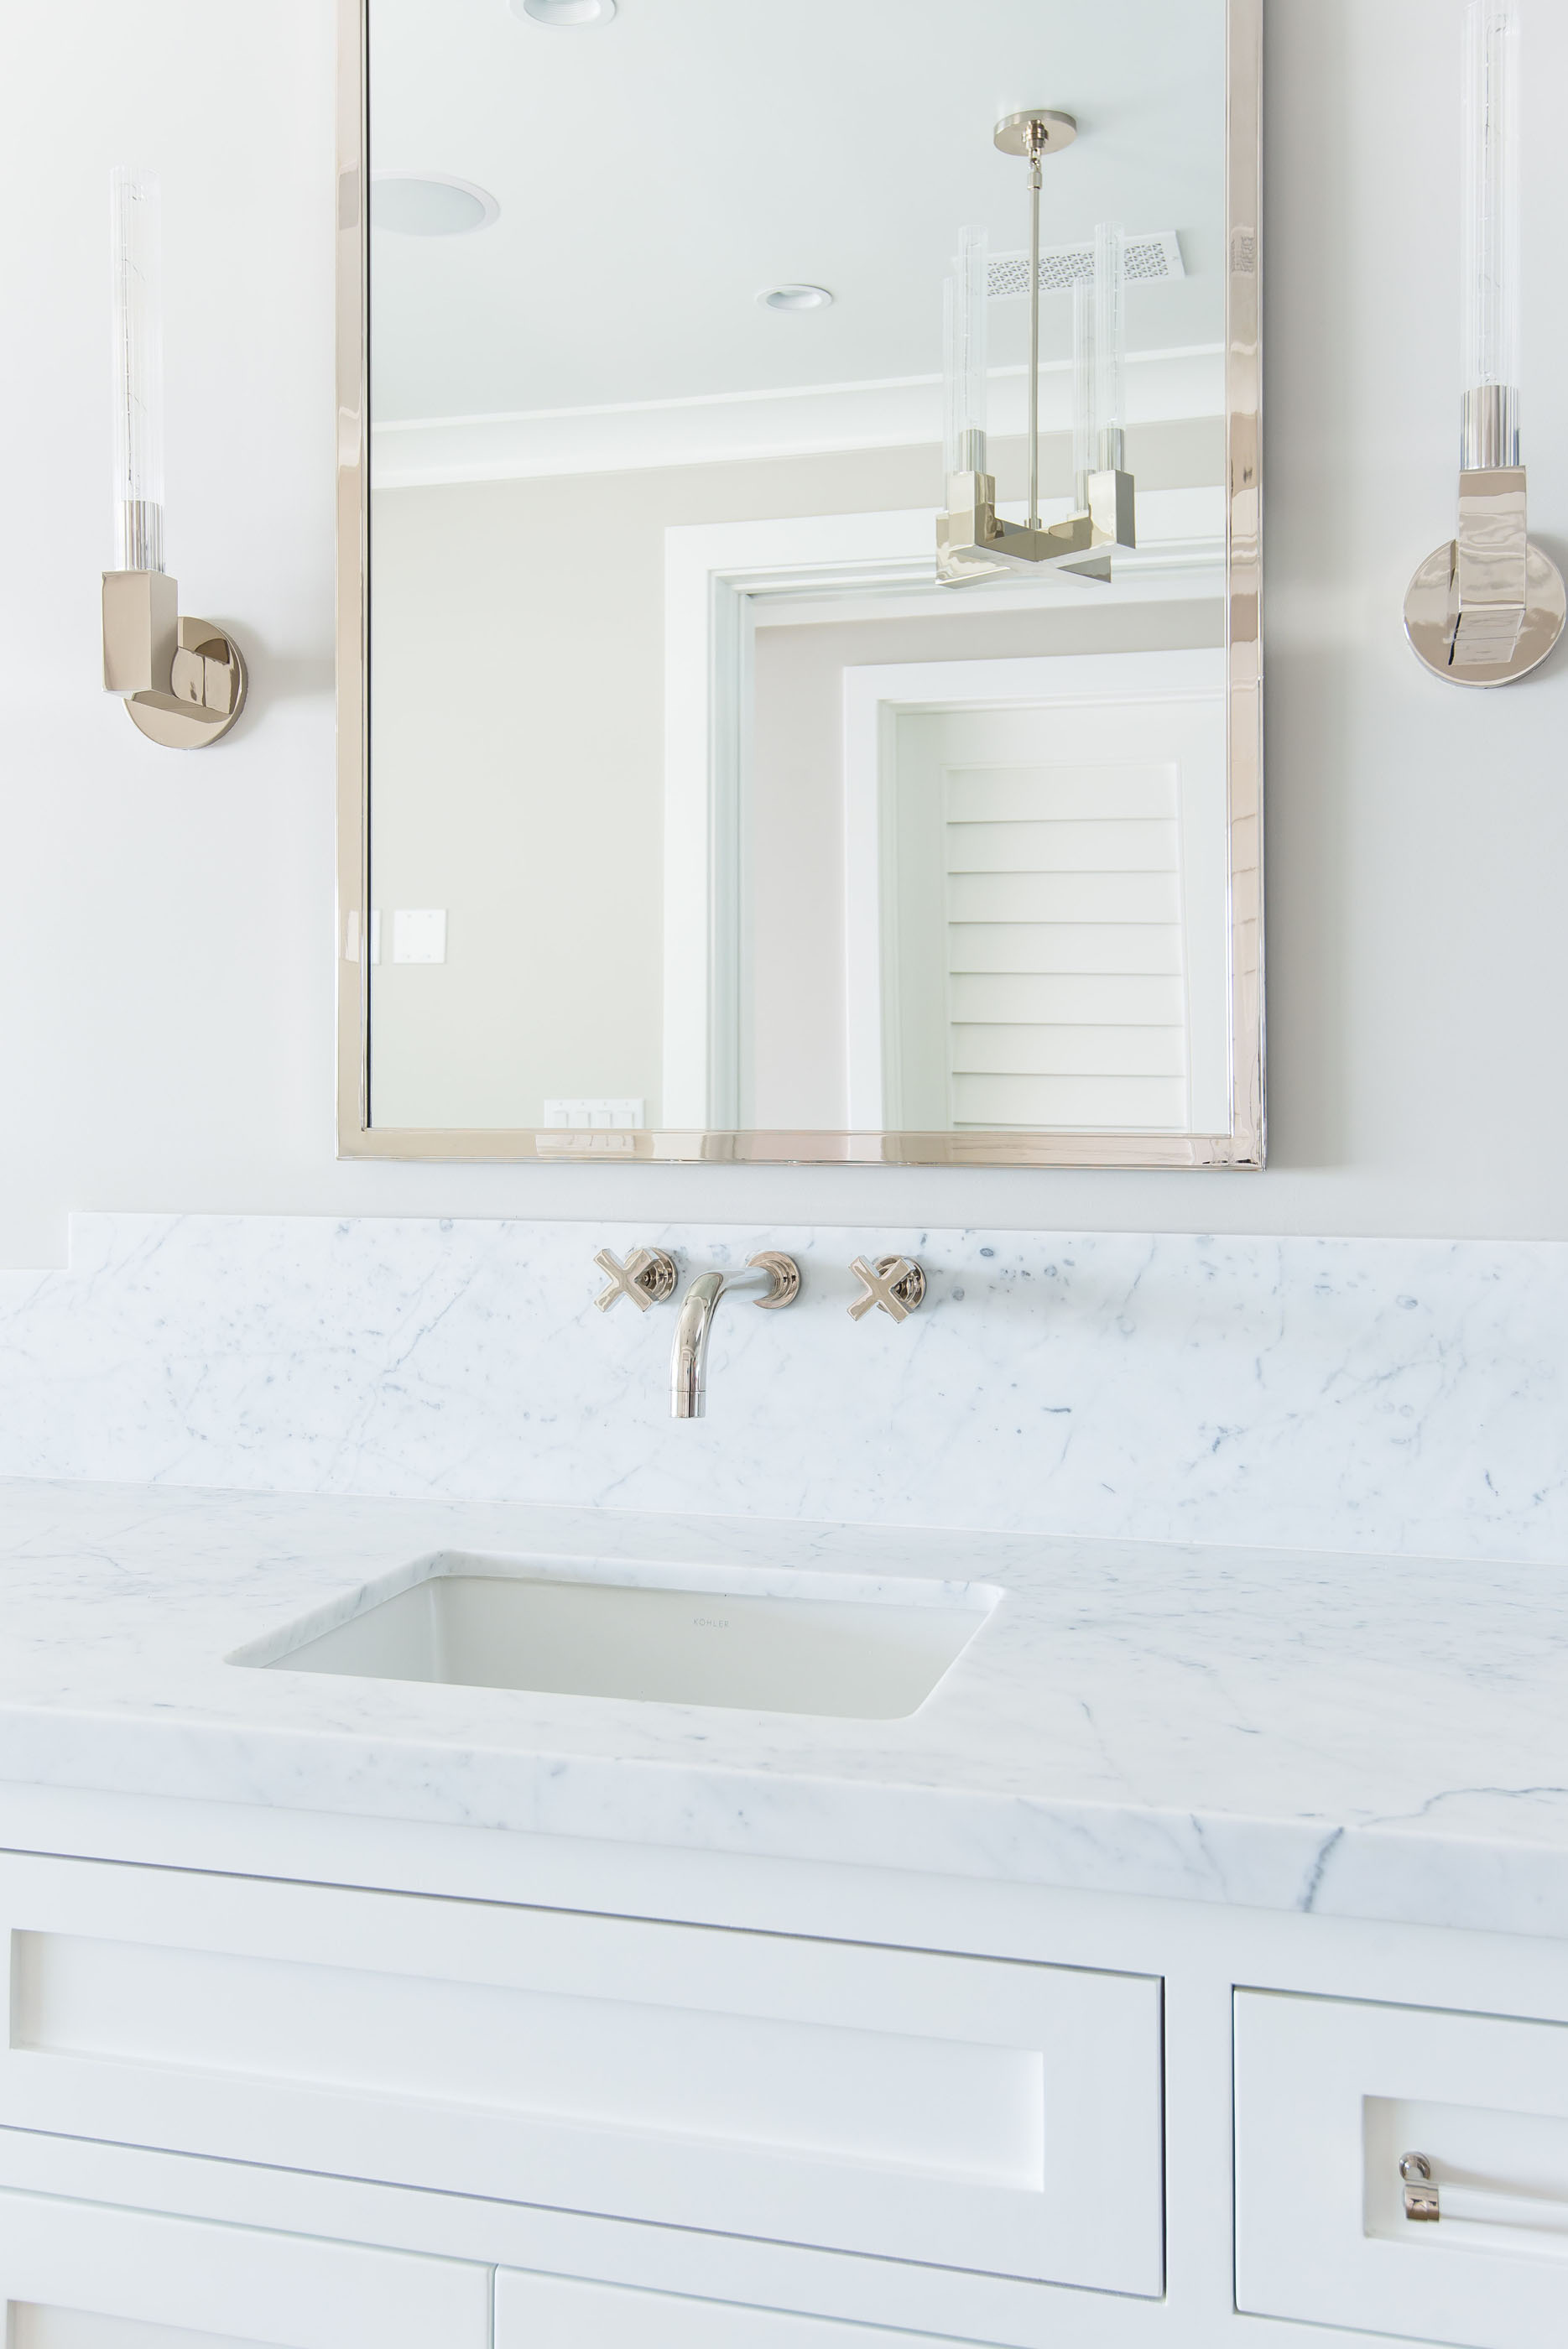 Bathroom Marble Restoration Hardware Modern Chrome Mirror Melissa Morgan Design